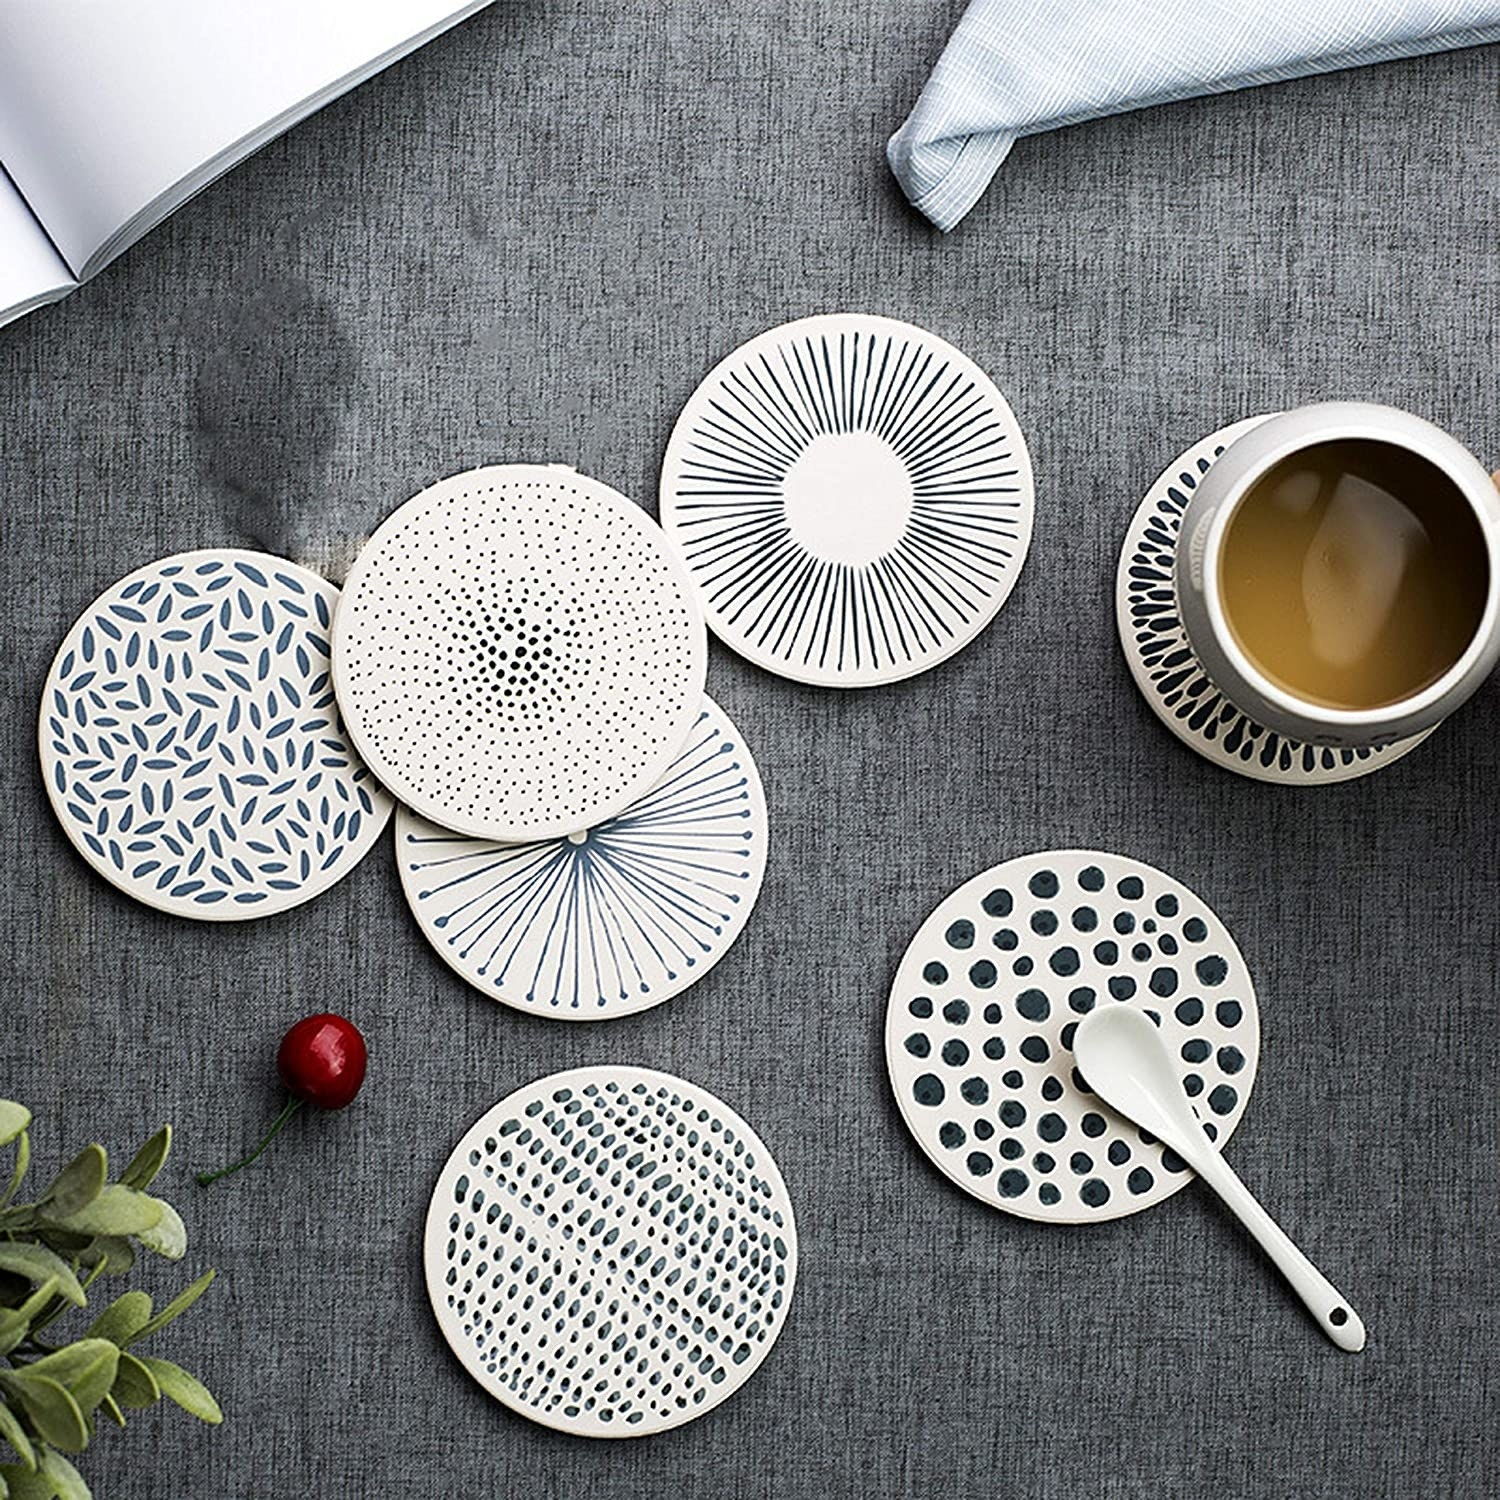 Five coasters with varying patterns in white and black or gray